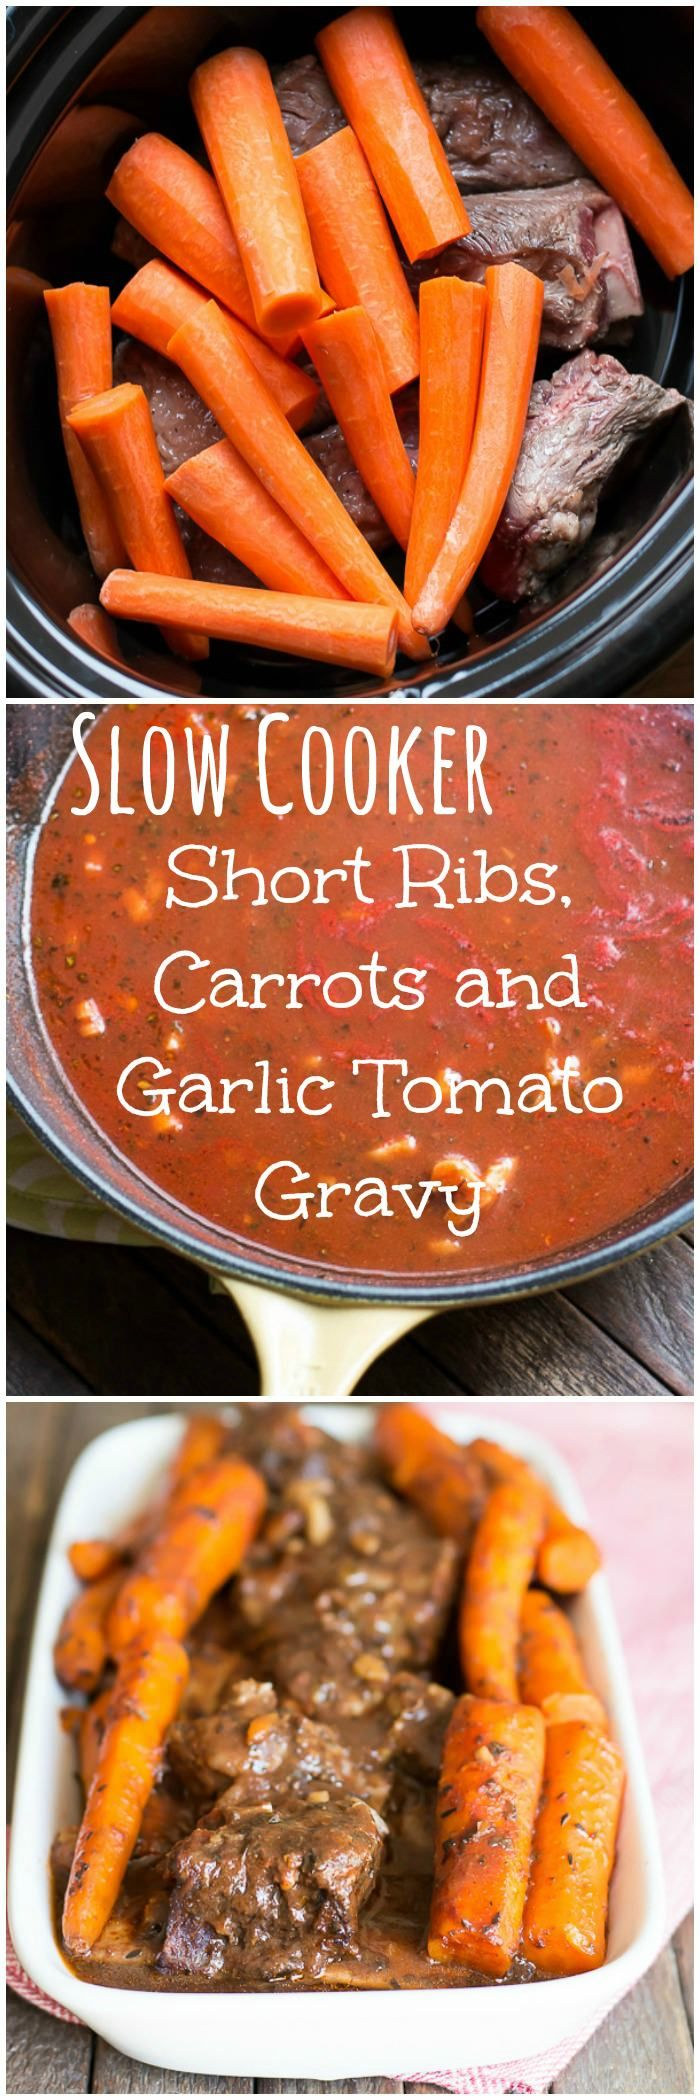 Slow Cooker Short Ribs, Carrots and Garlic Tomato Gravy